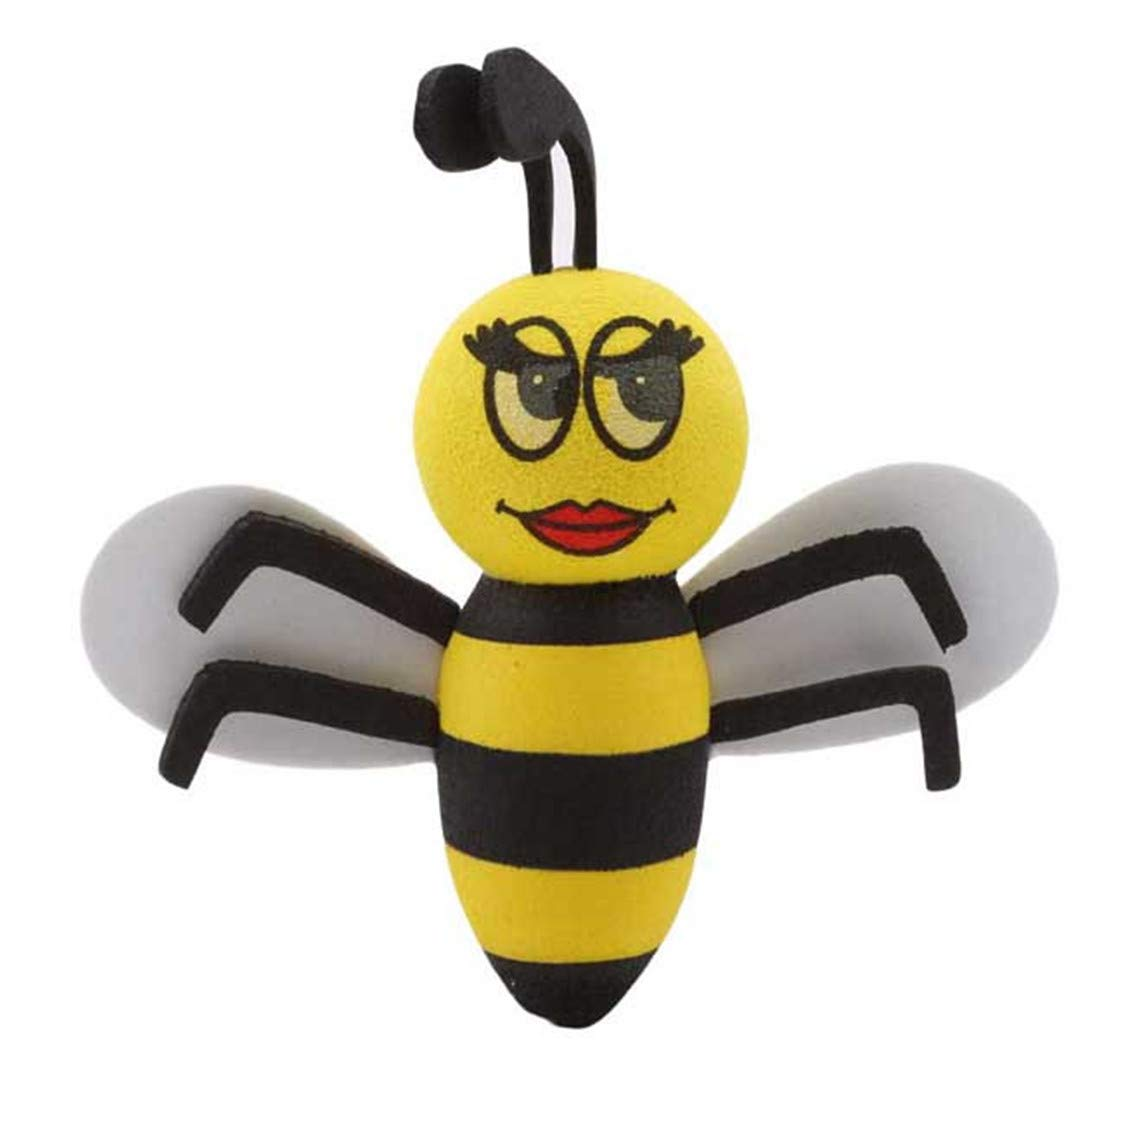 #1 Idiytip Cute Honeybee Bee Queen Car Antenna Toppers Smiley Honey Bumble Aerial Balls Antenna Topper Auto Exterior Vehicle Roof Decor